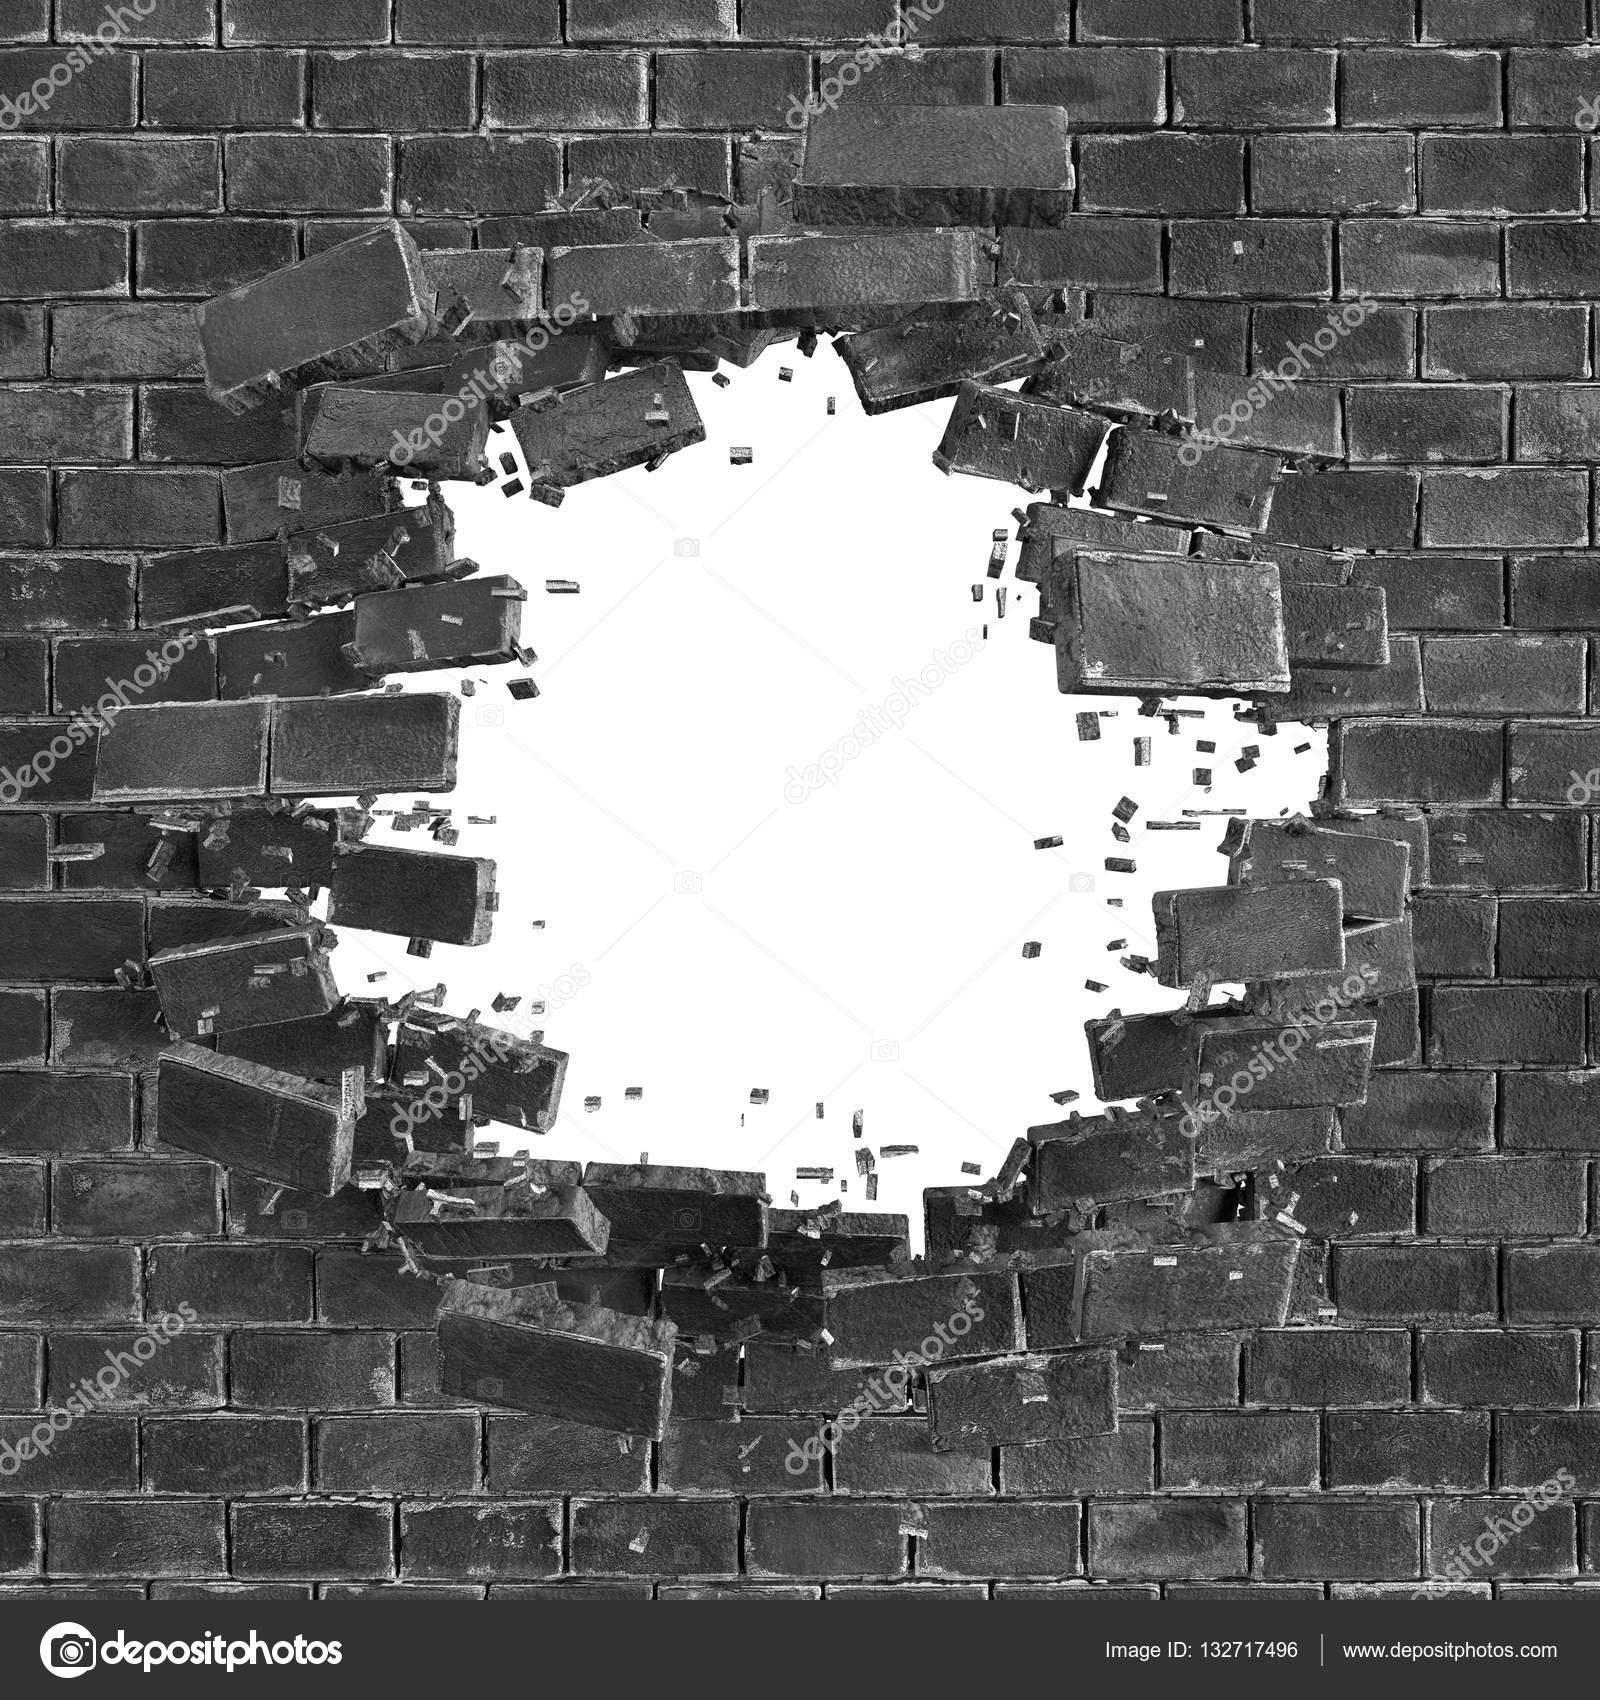 3d render, digital illustration, abstract broken brick wall background,  hole isolated u2014 Photo by wacomka - Broken Brick Wall PNG